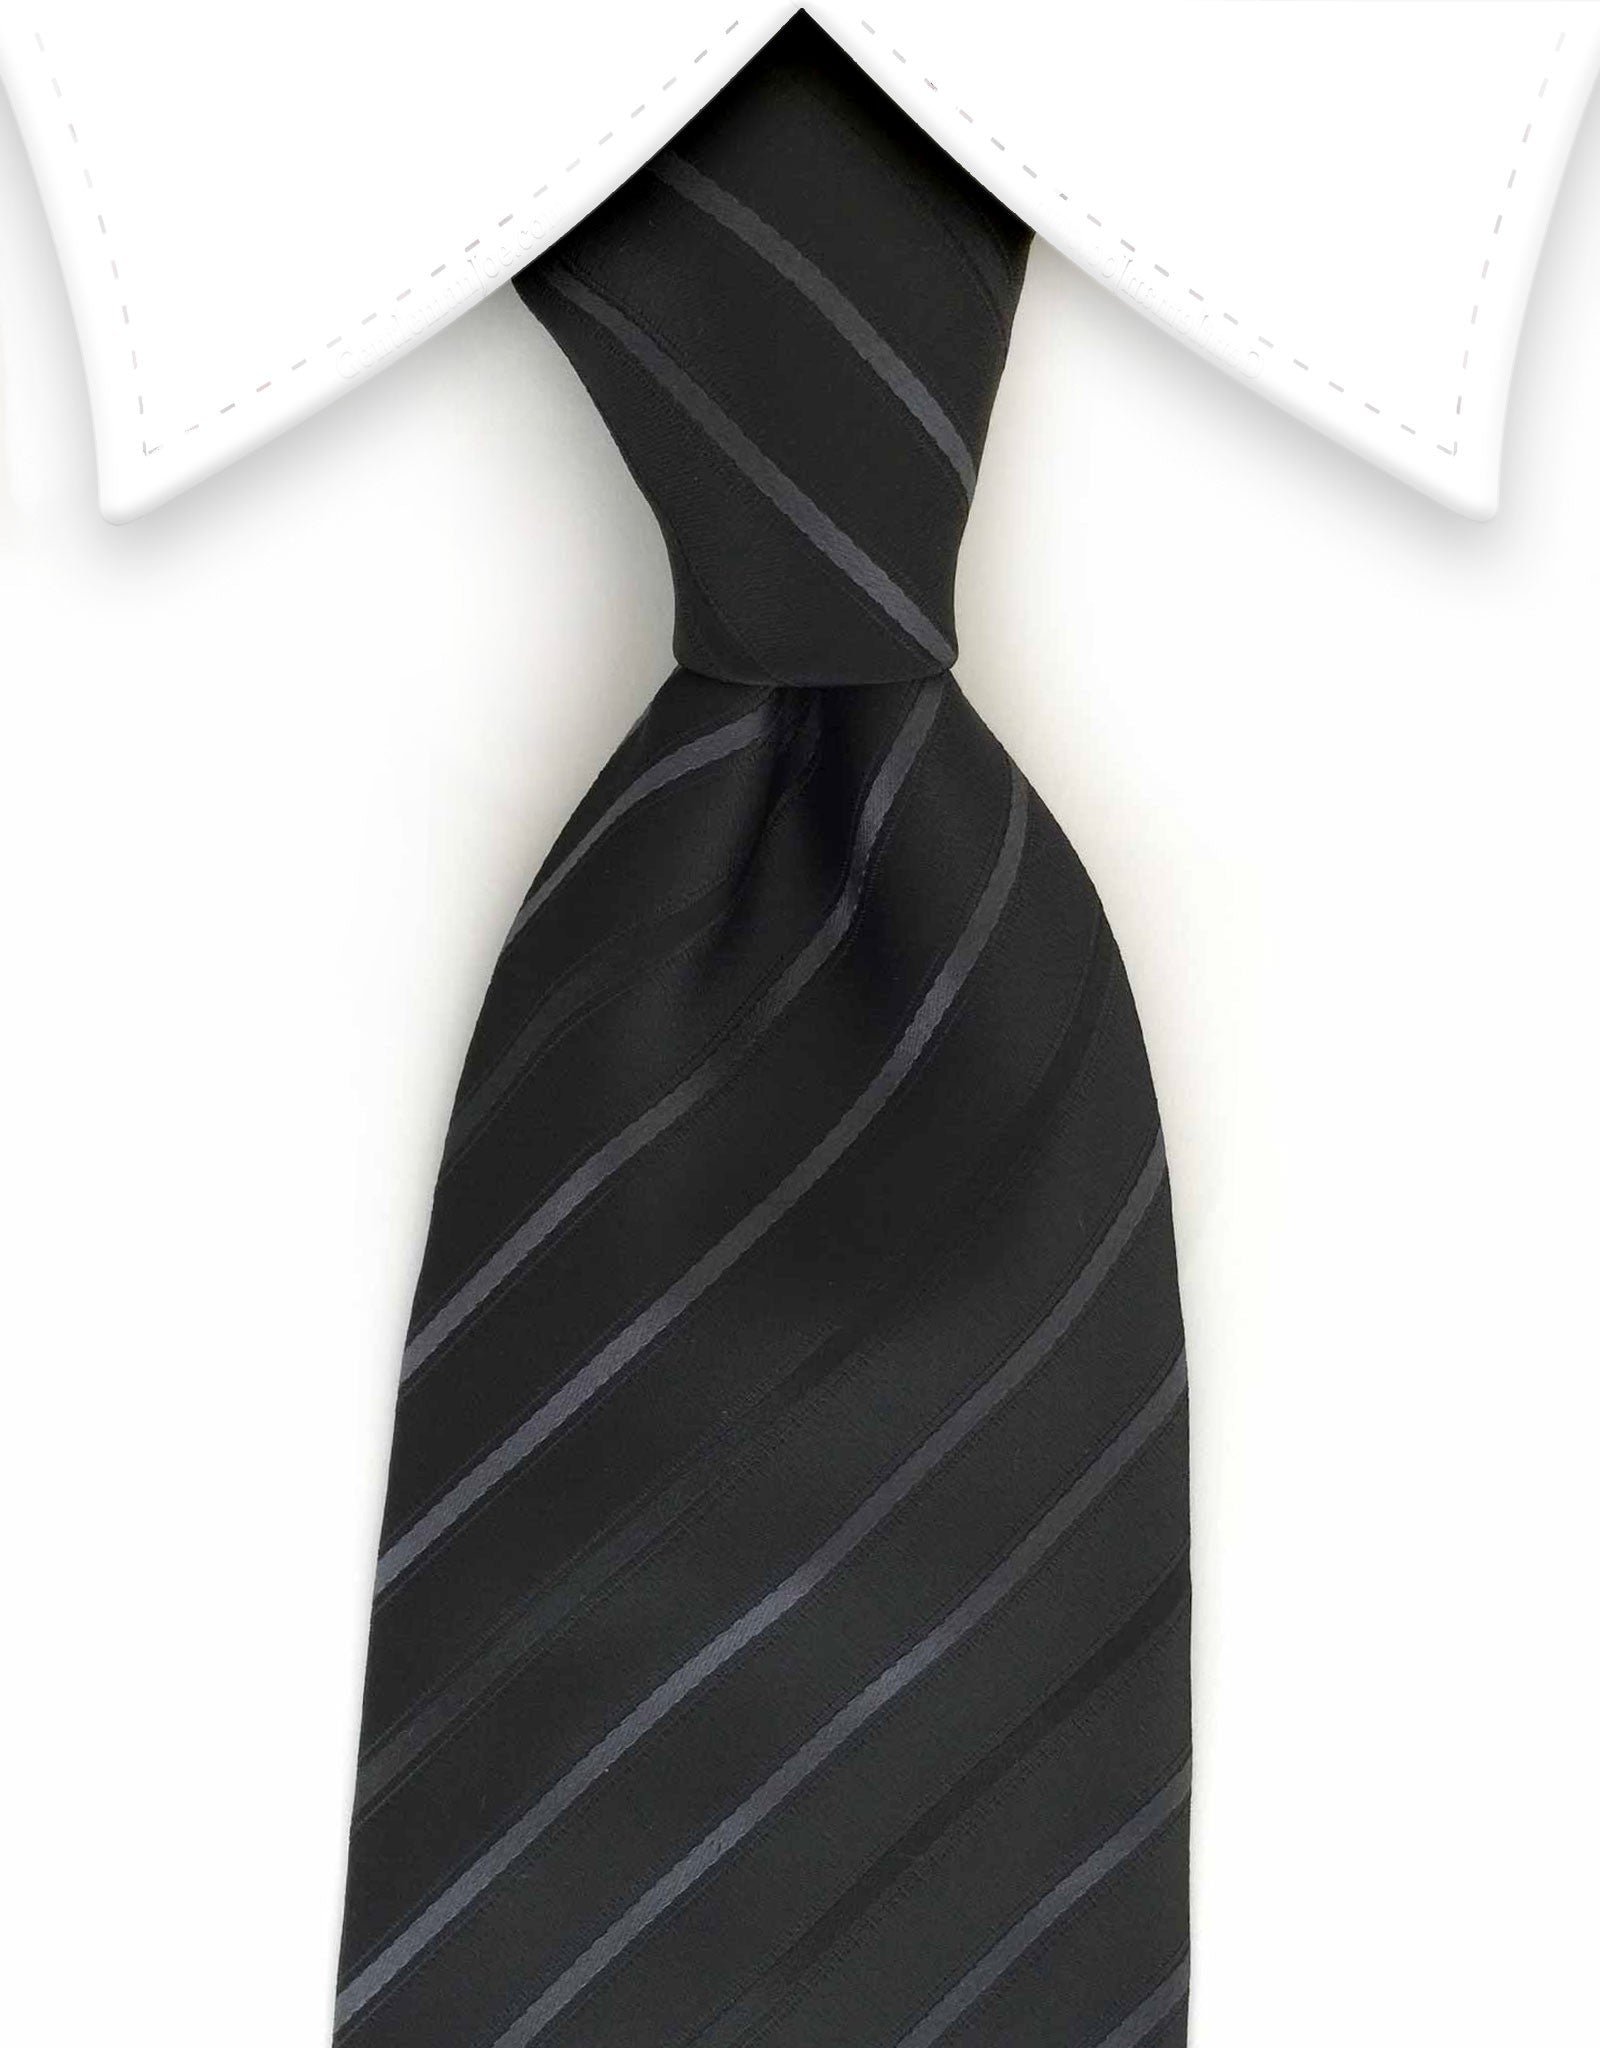 Black and gray striped tie